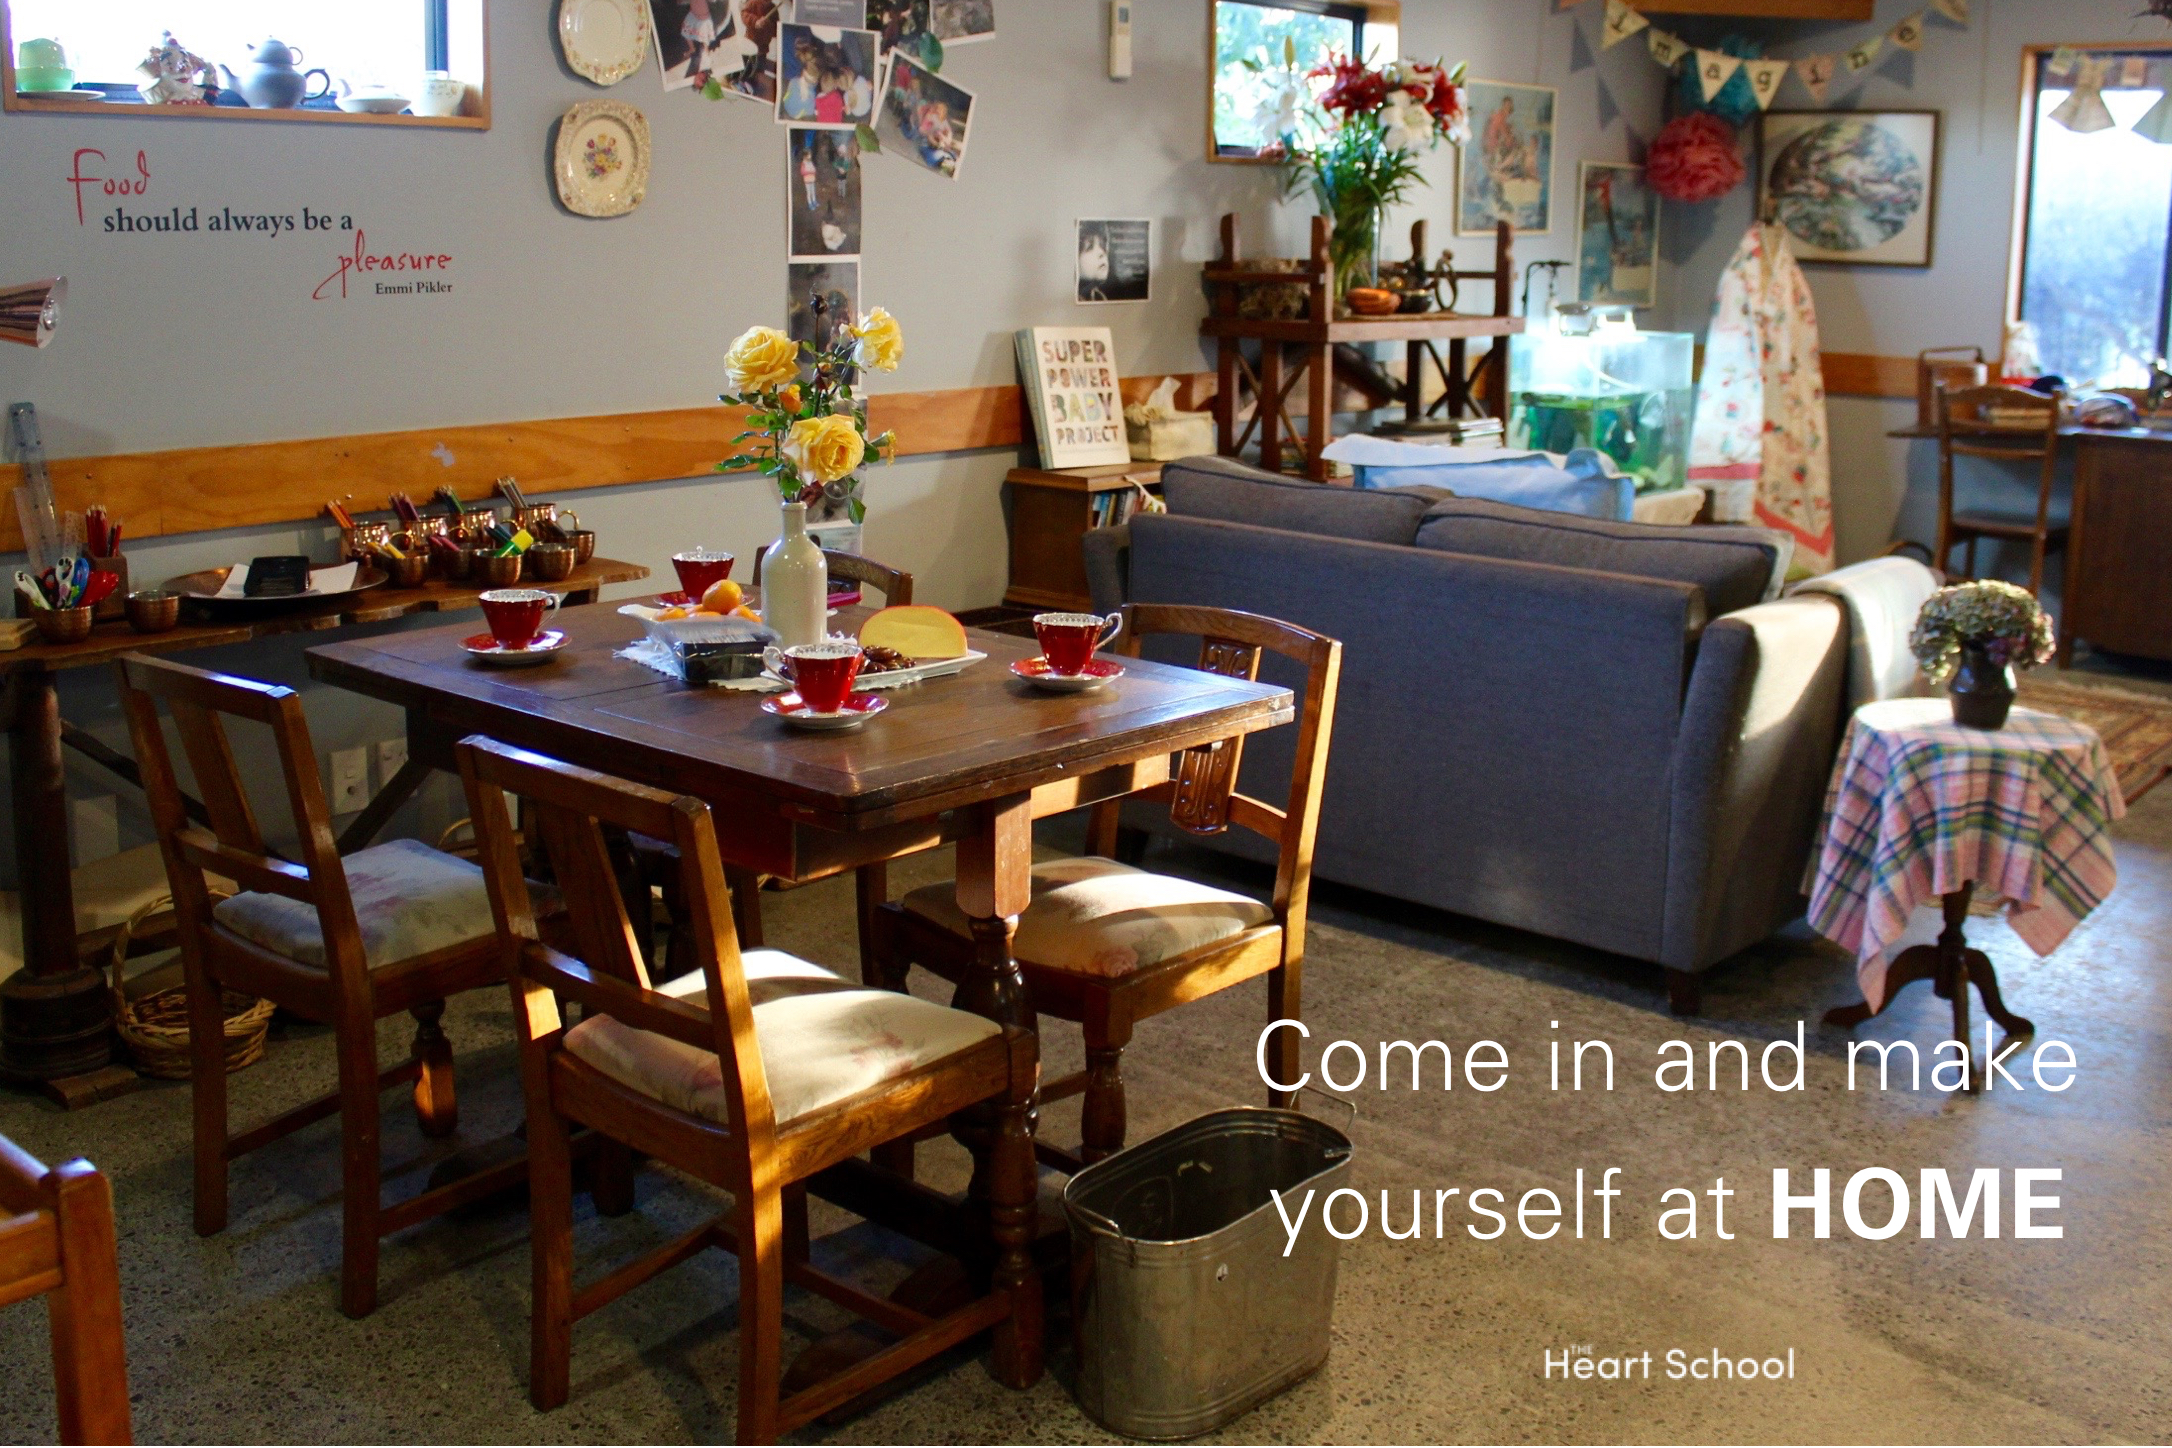 """We know that an environment speaks volumes. If we were to put into words exactly what we want the children to hear it would be, """"you are so welcome here, this is your place, it belongs to you. We know you can find true happiness here and we know that you'll thrive. Come in and make yourself at home""""!It is our role as teachers to provide a place where children feel totally 'at home'."""